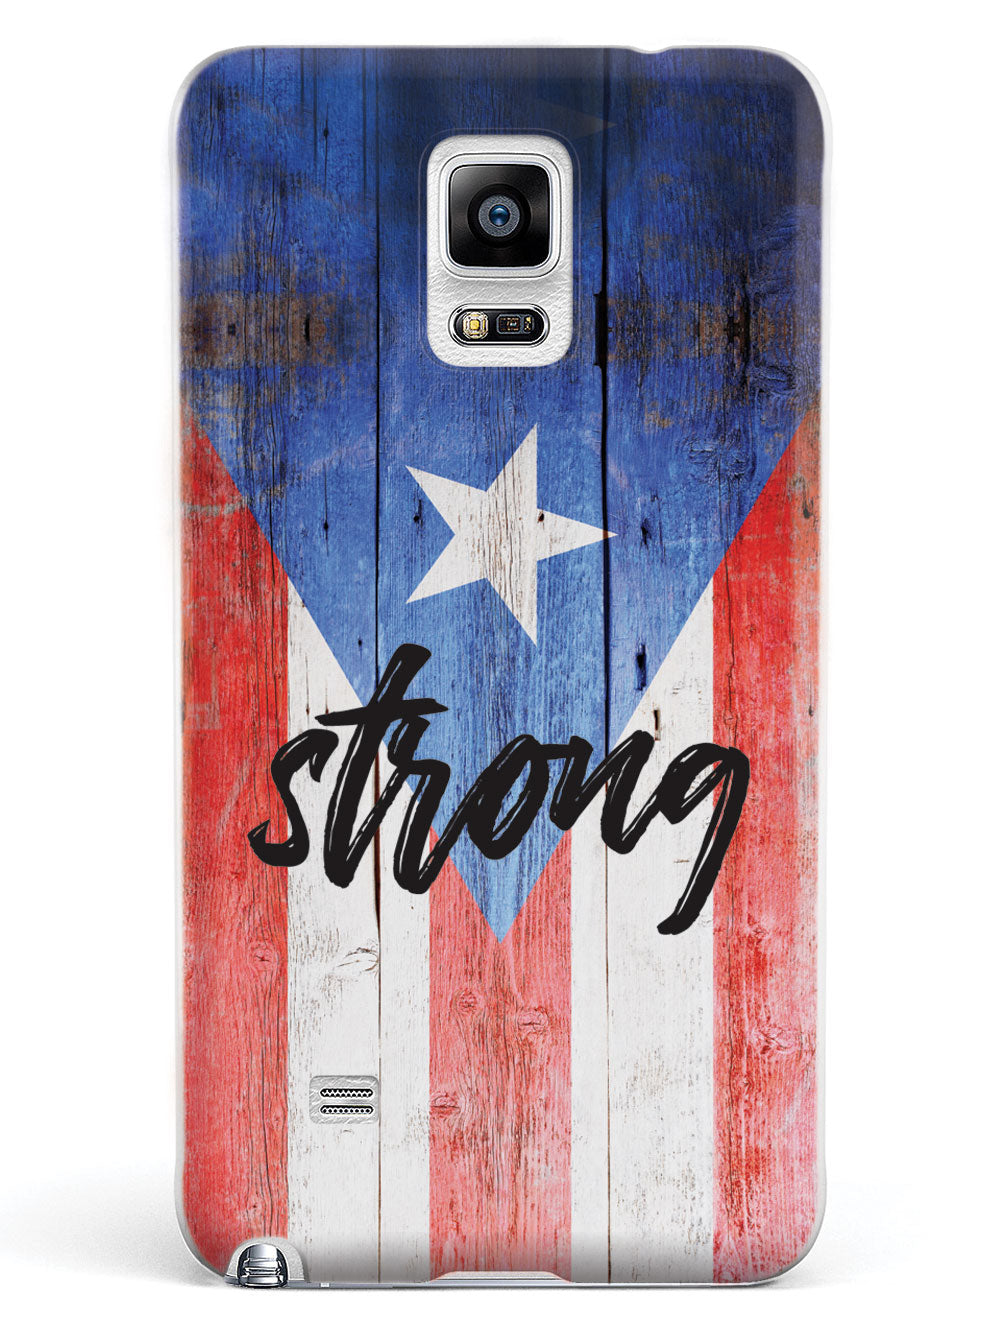 Puerto Rico Strong - Textured Flag Case